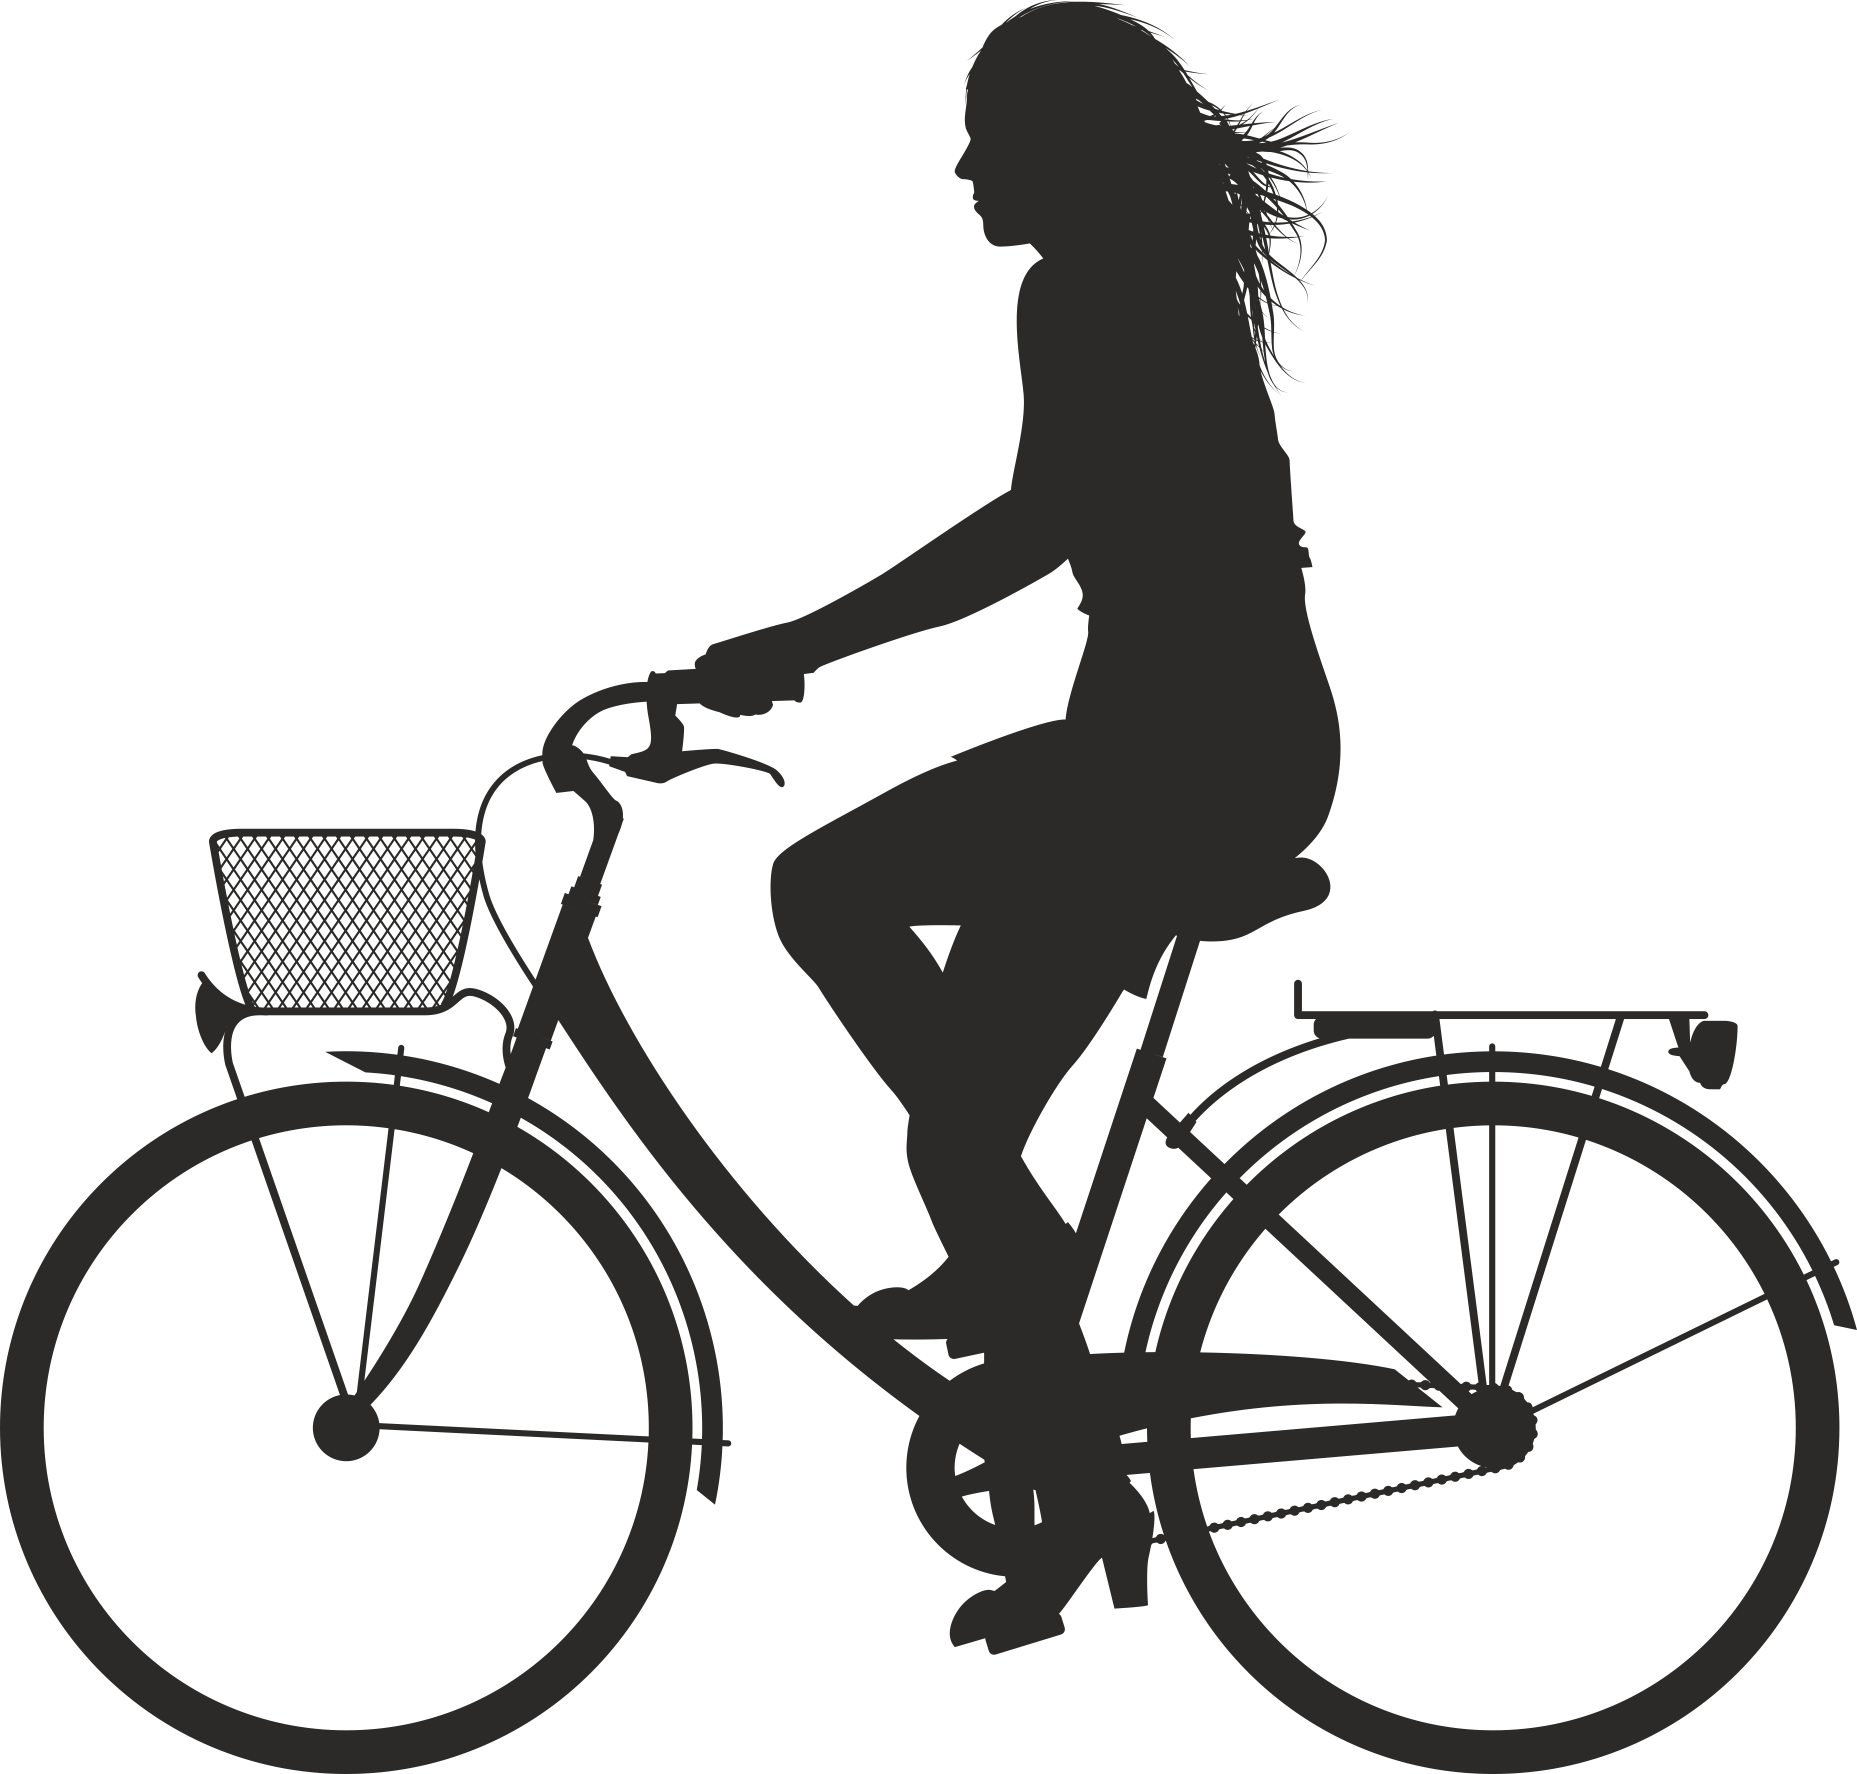 Silhouette Cyclist Collection Of Bicycle 19 Free DXF File